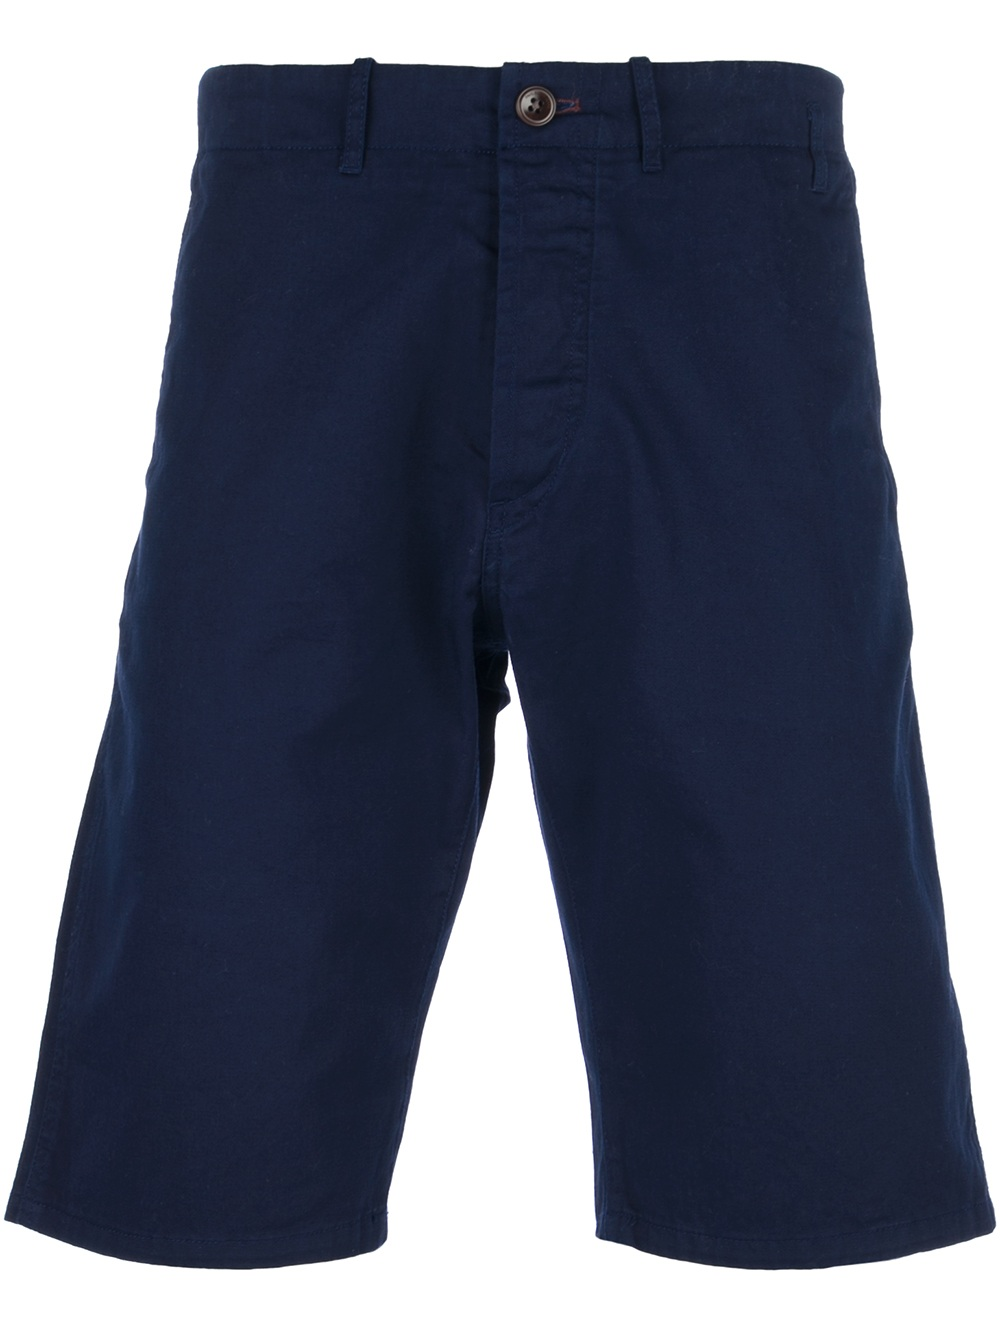 Ps By Paul Smith Classic Deck Shorts in Blue for Men